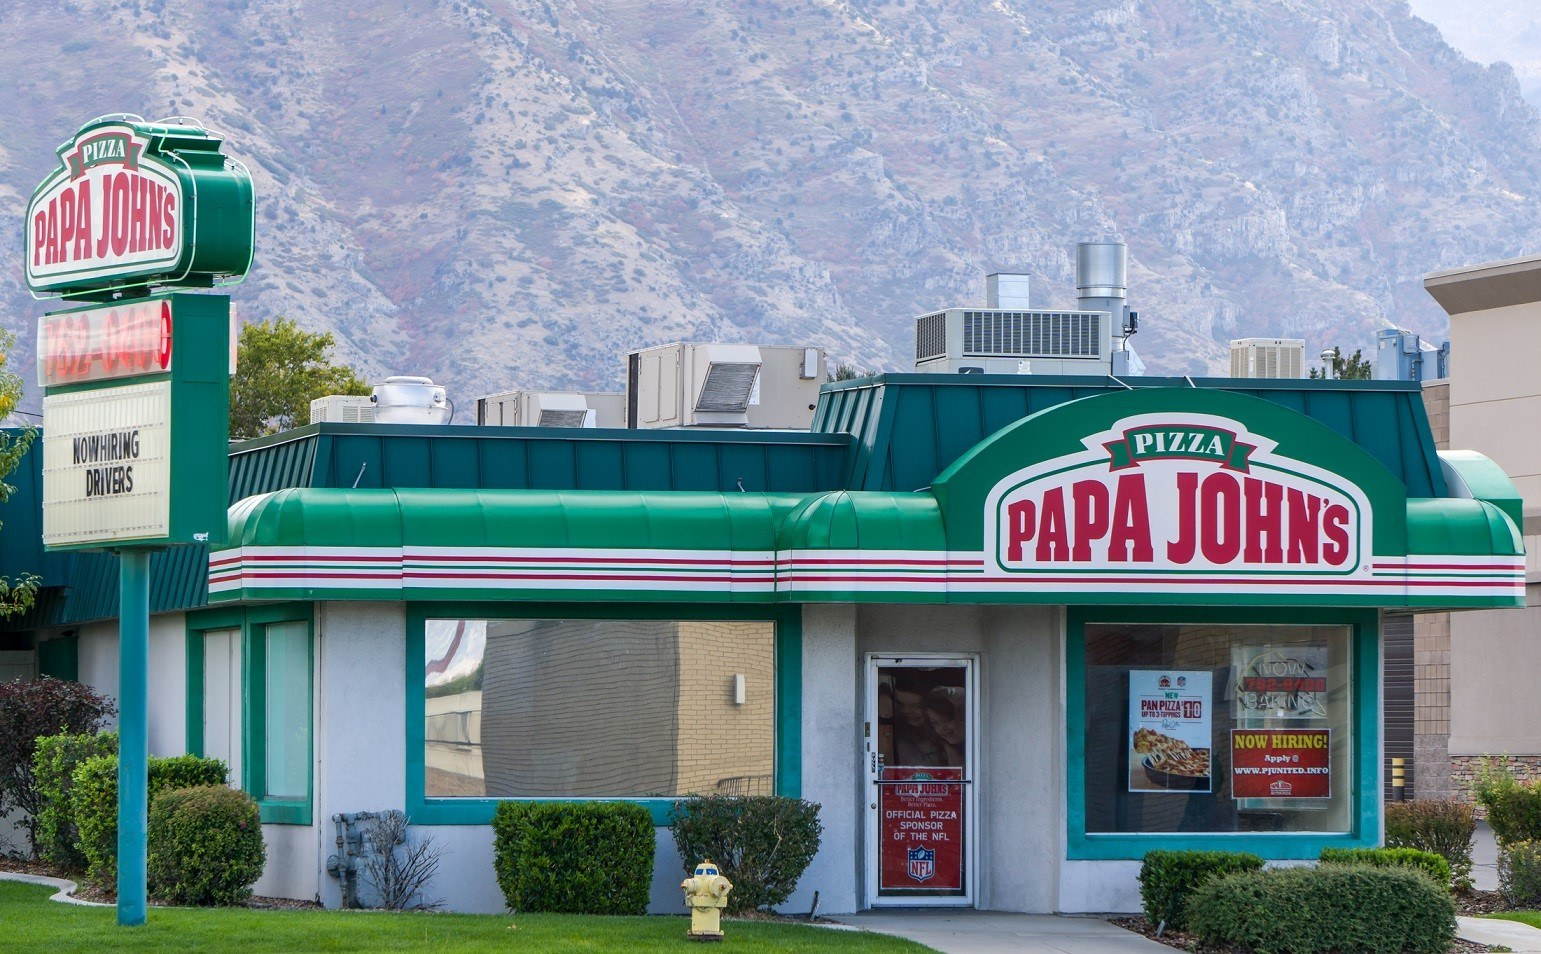 The Surprising Histories Behind Your Favorite Fast Food Restaurants